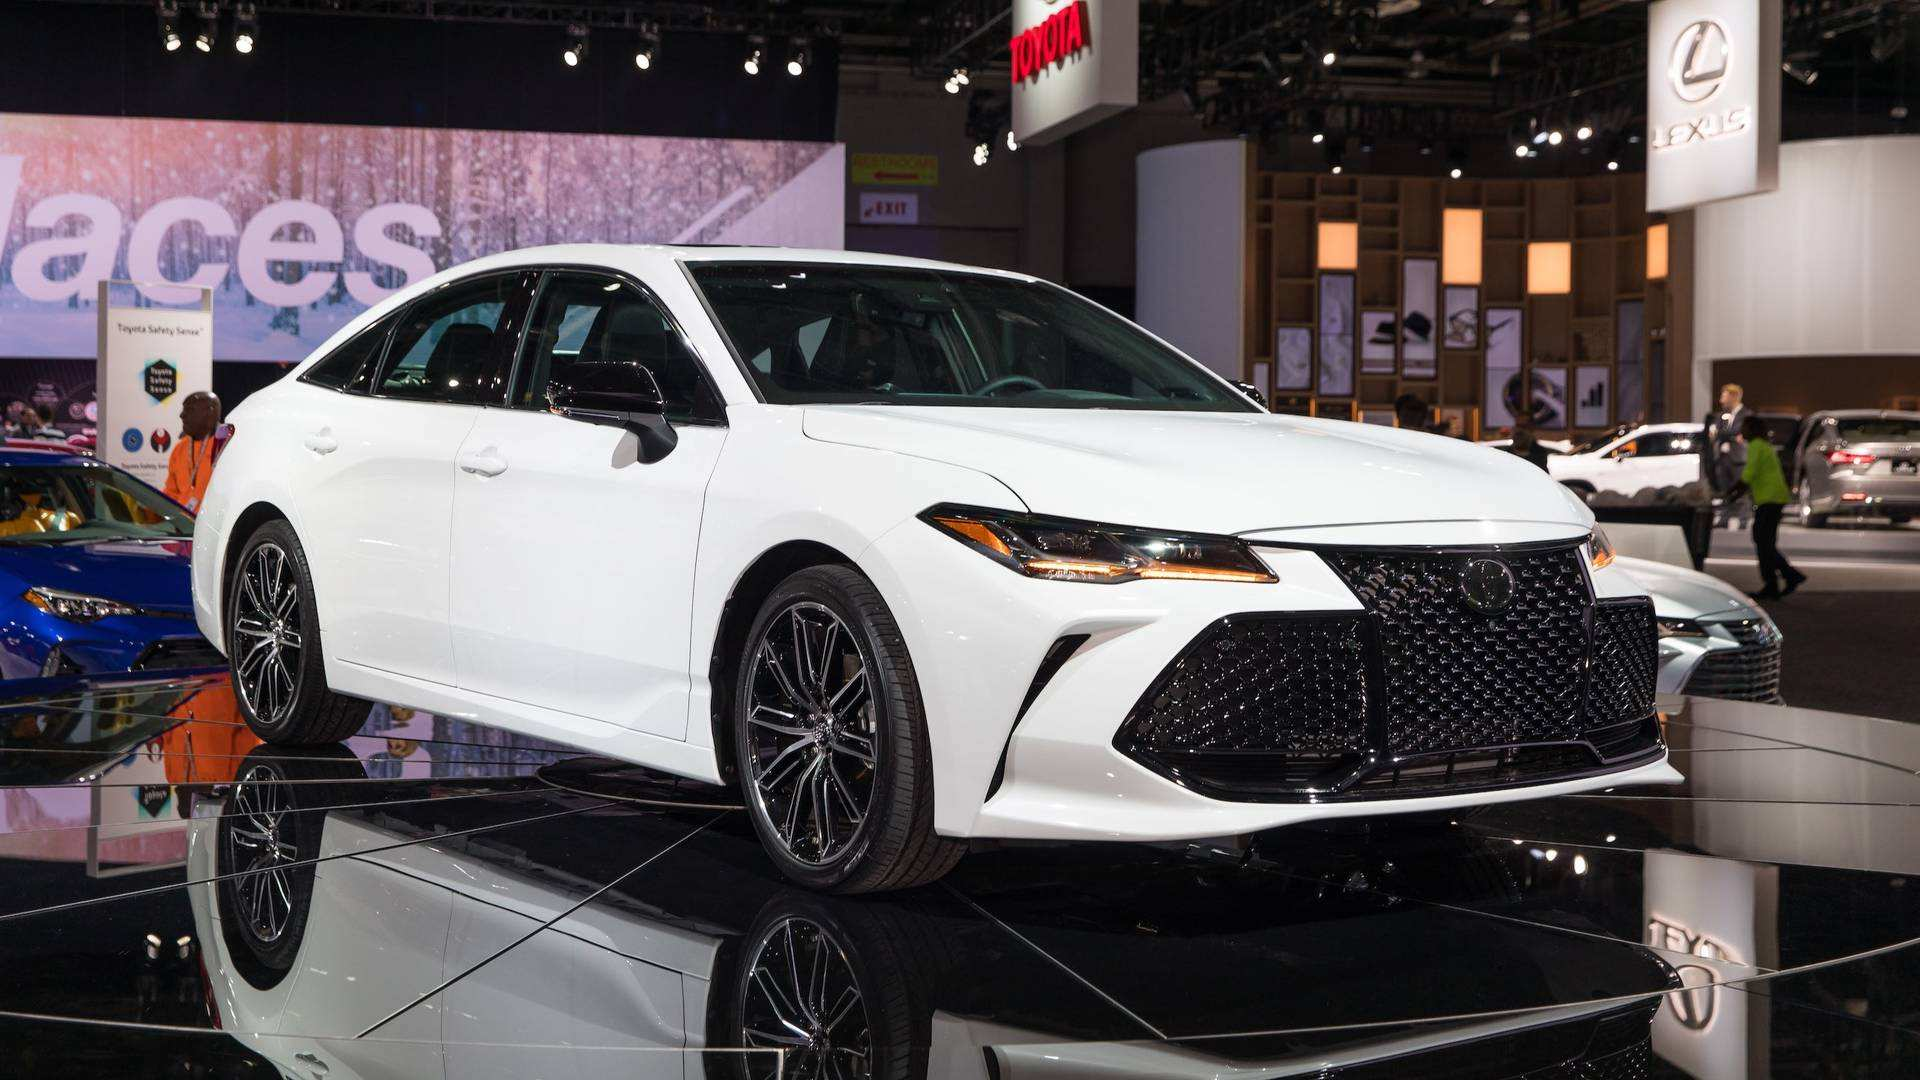 93 Great 2020 Toyota Avalon Brochure Reviews by 2020 Toyota Avalon Brochure